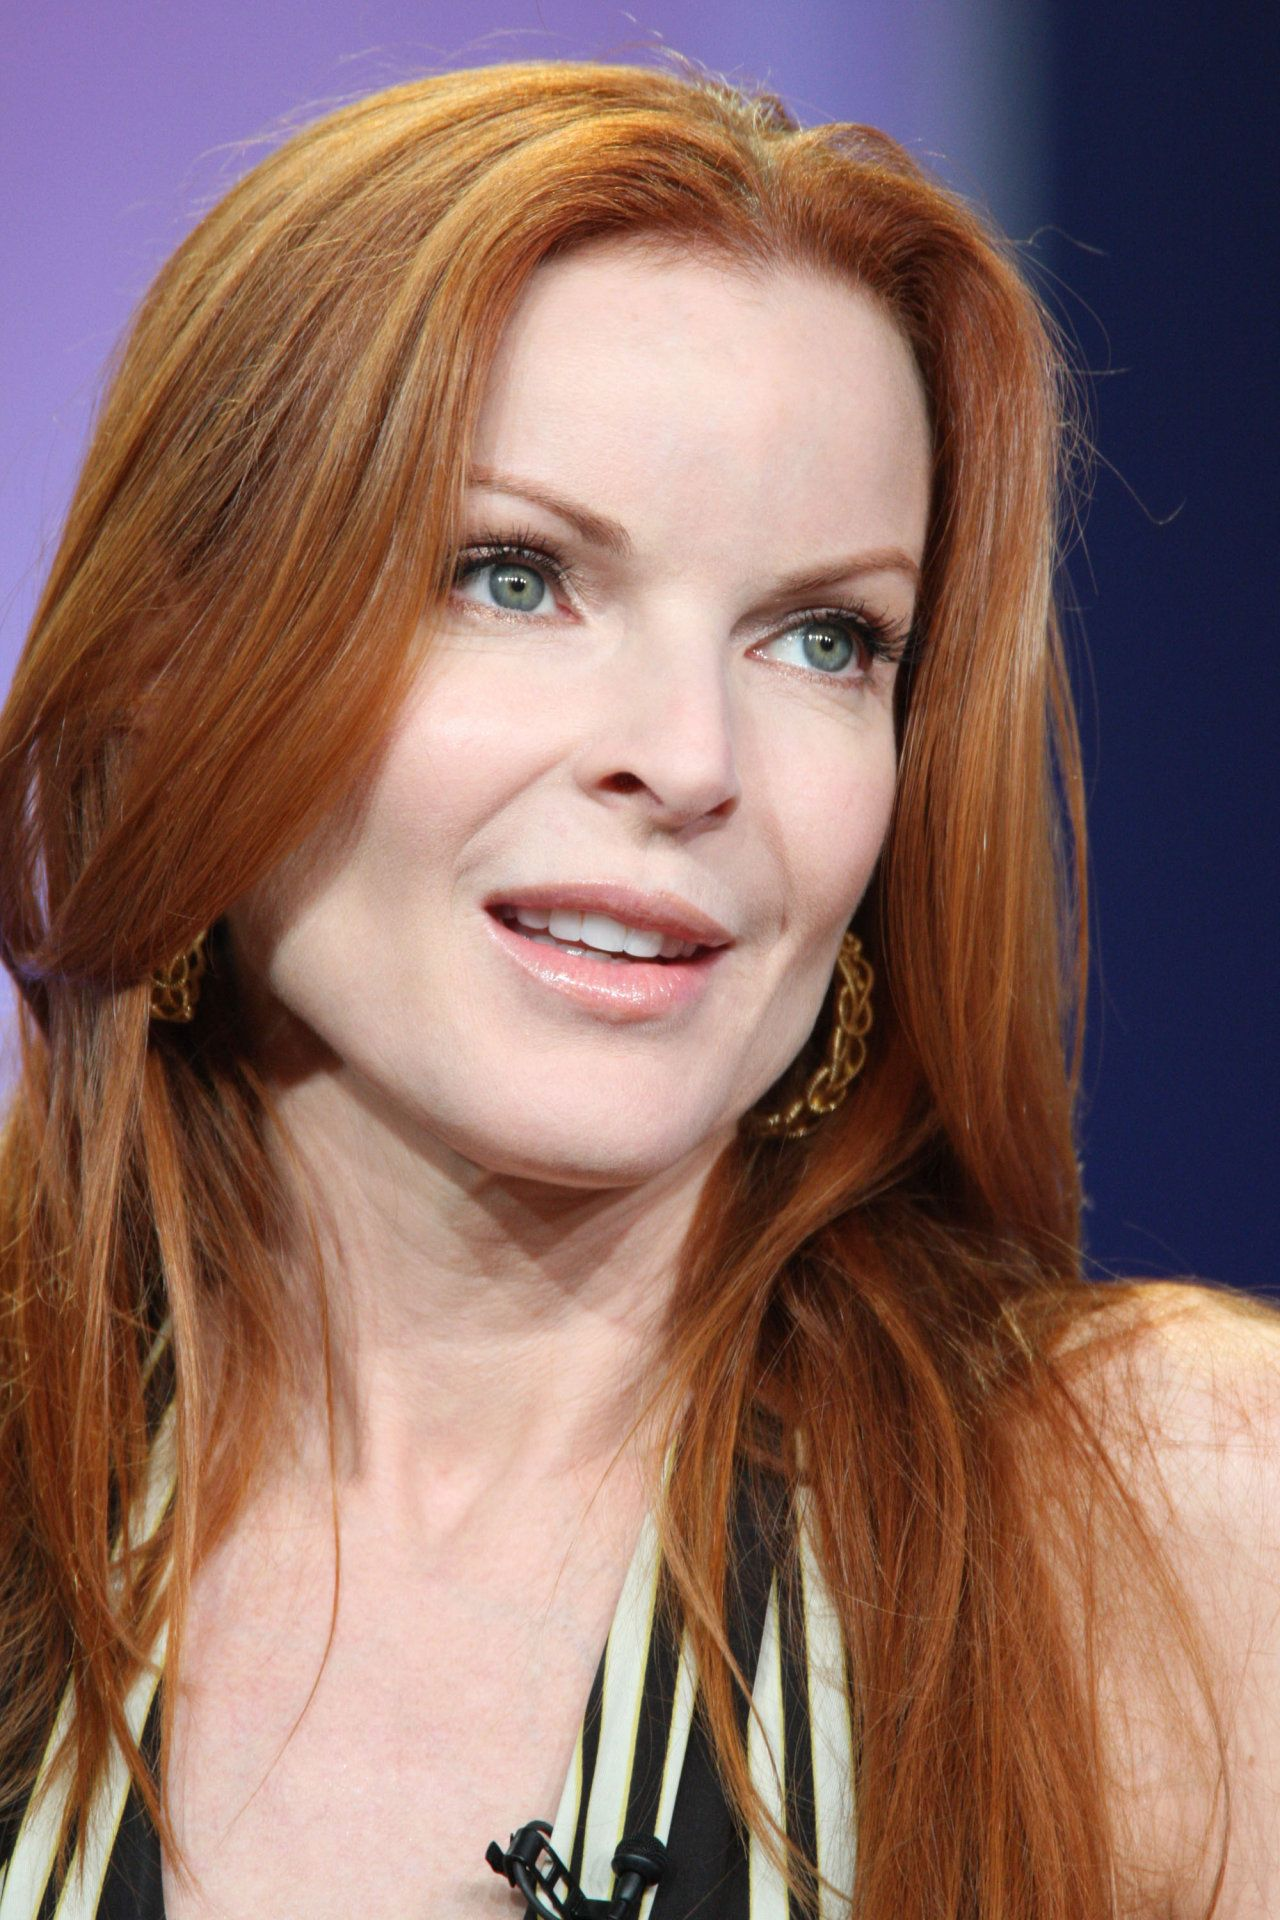 Cleavage Marcia Cross nude (17 foto and video), Topless, Hot, Instagram, swimsuit 2019